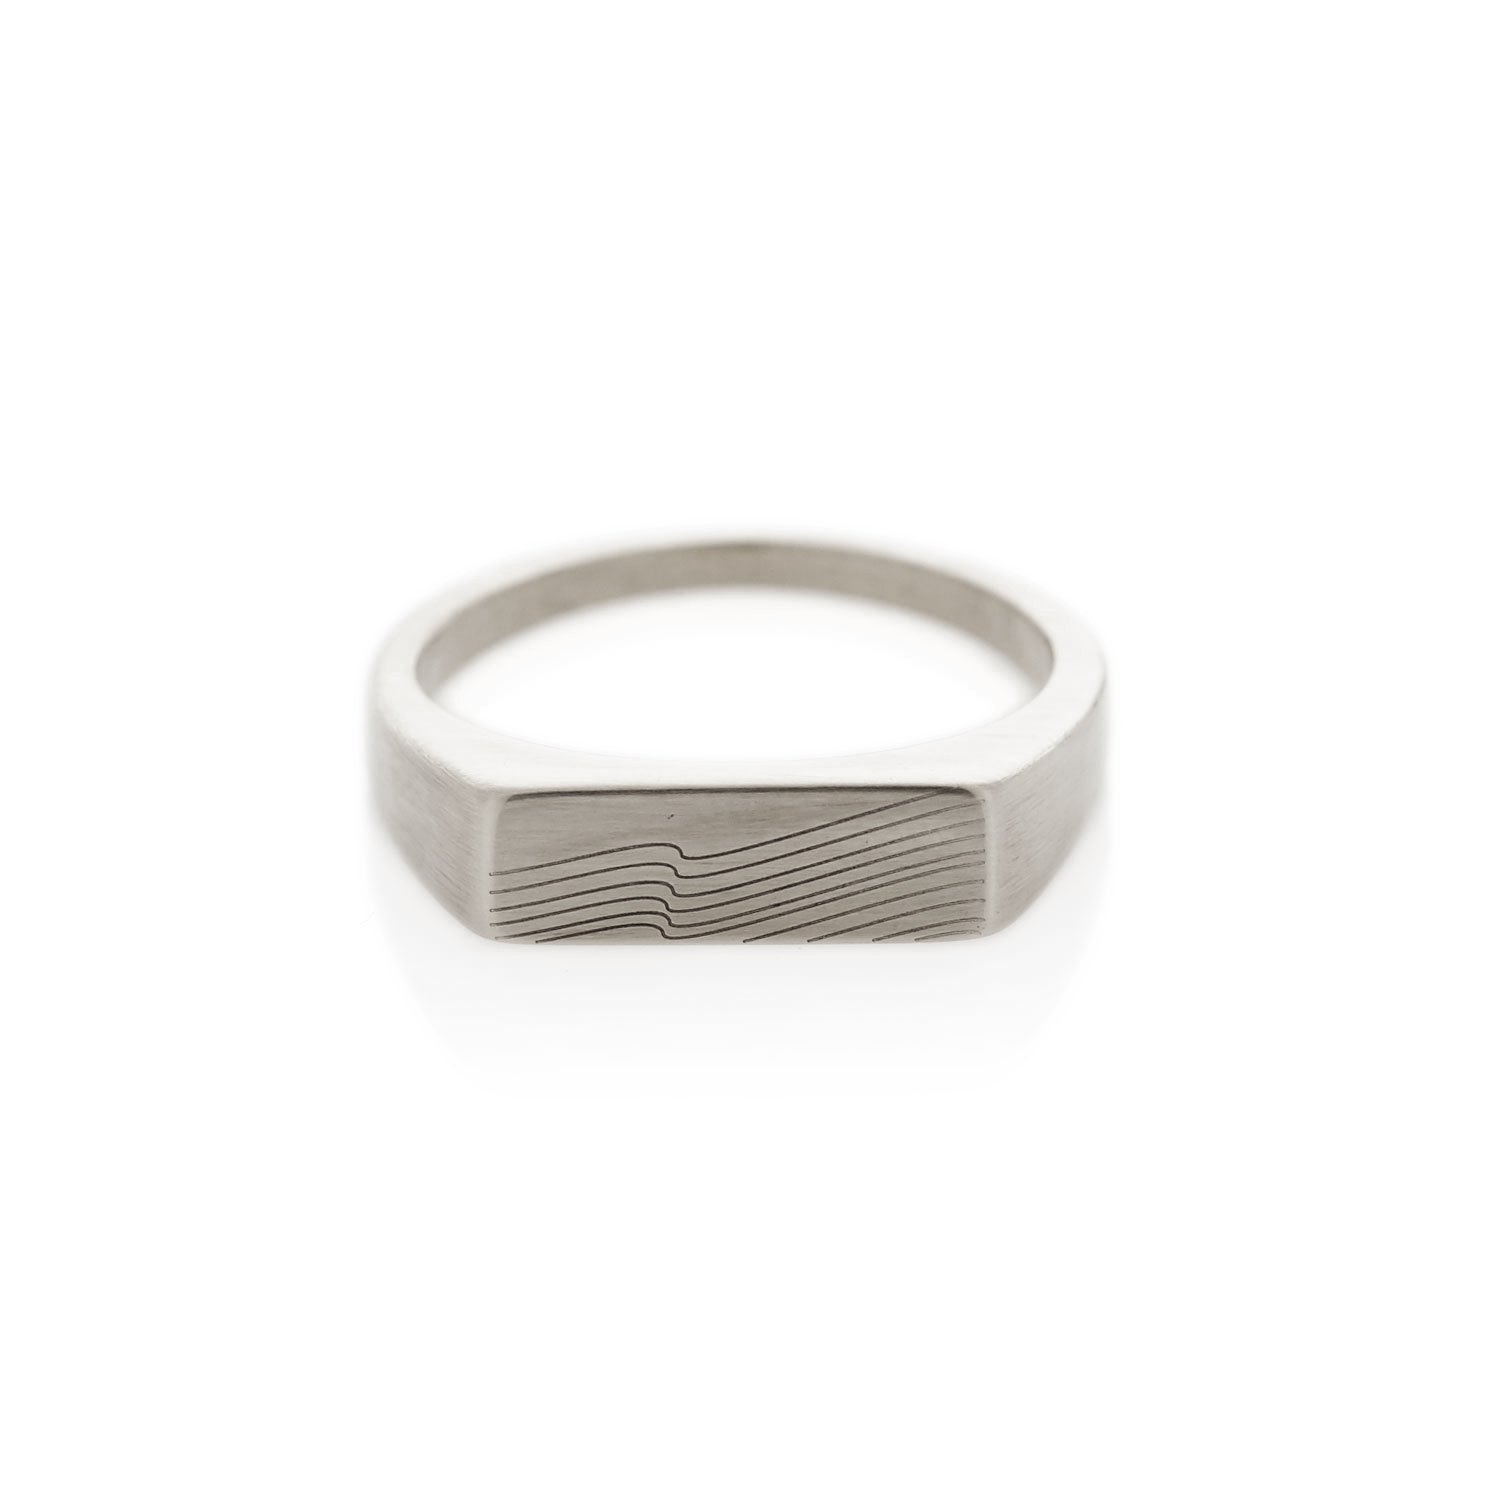 Summit silver rectangle signet ring